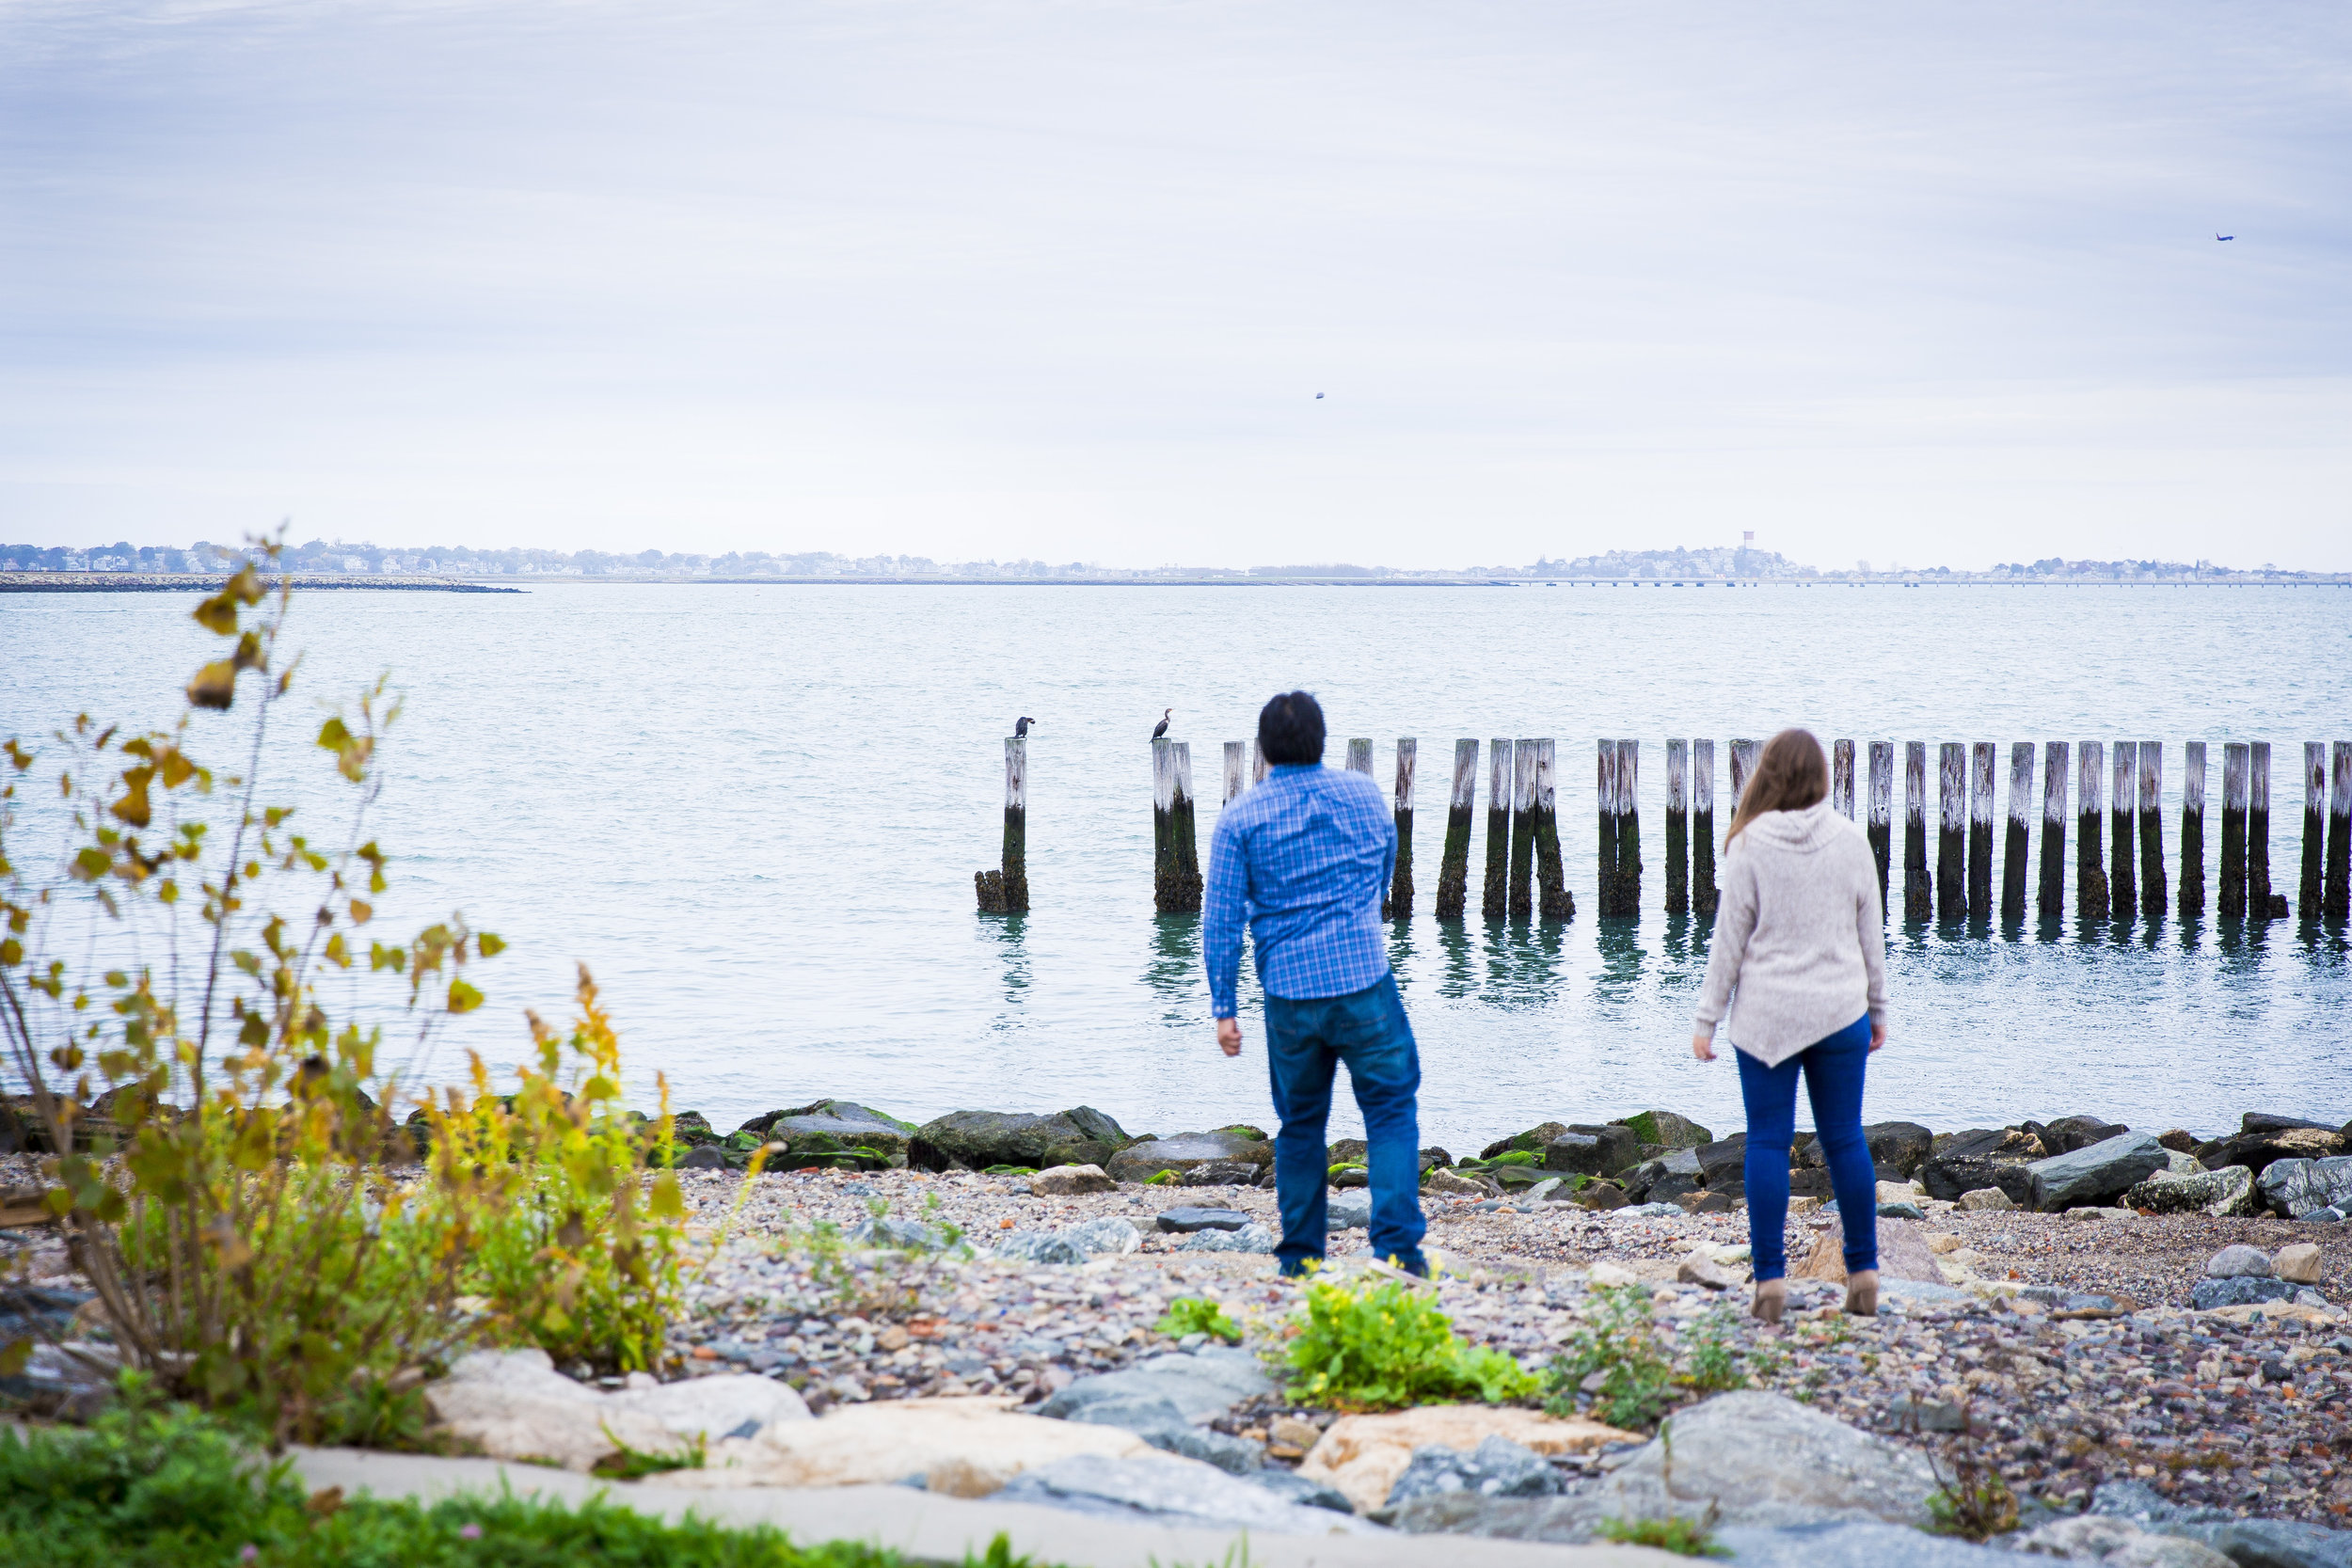 8C2A5075 Giovanni The Photographer Best Boston Wedding PhotographyErica and Richard's Engagement Session 10-29-17.jpg